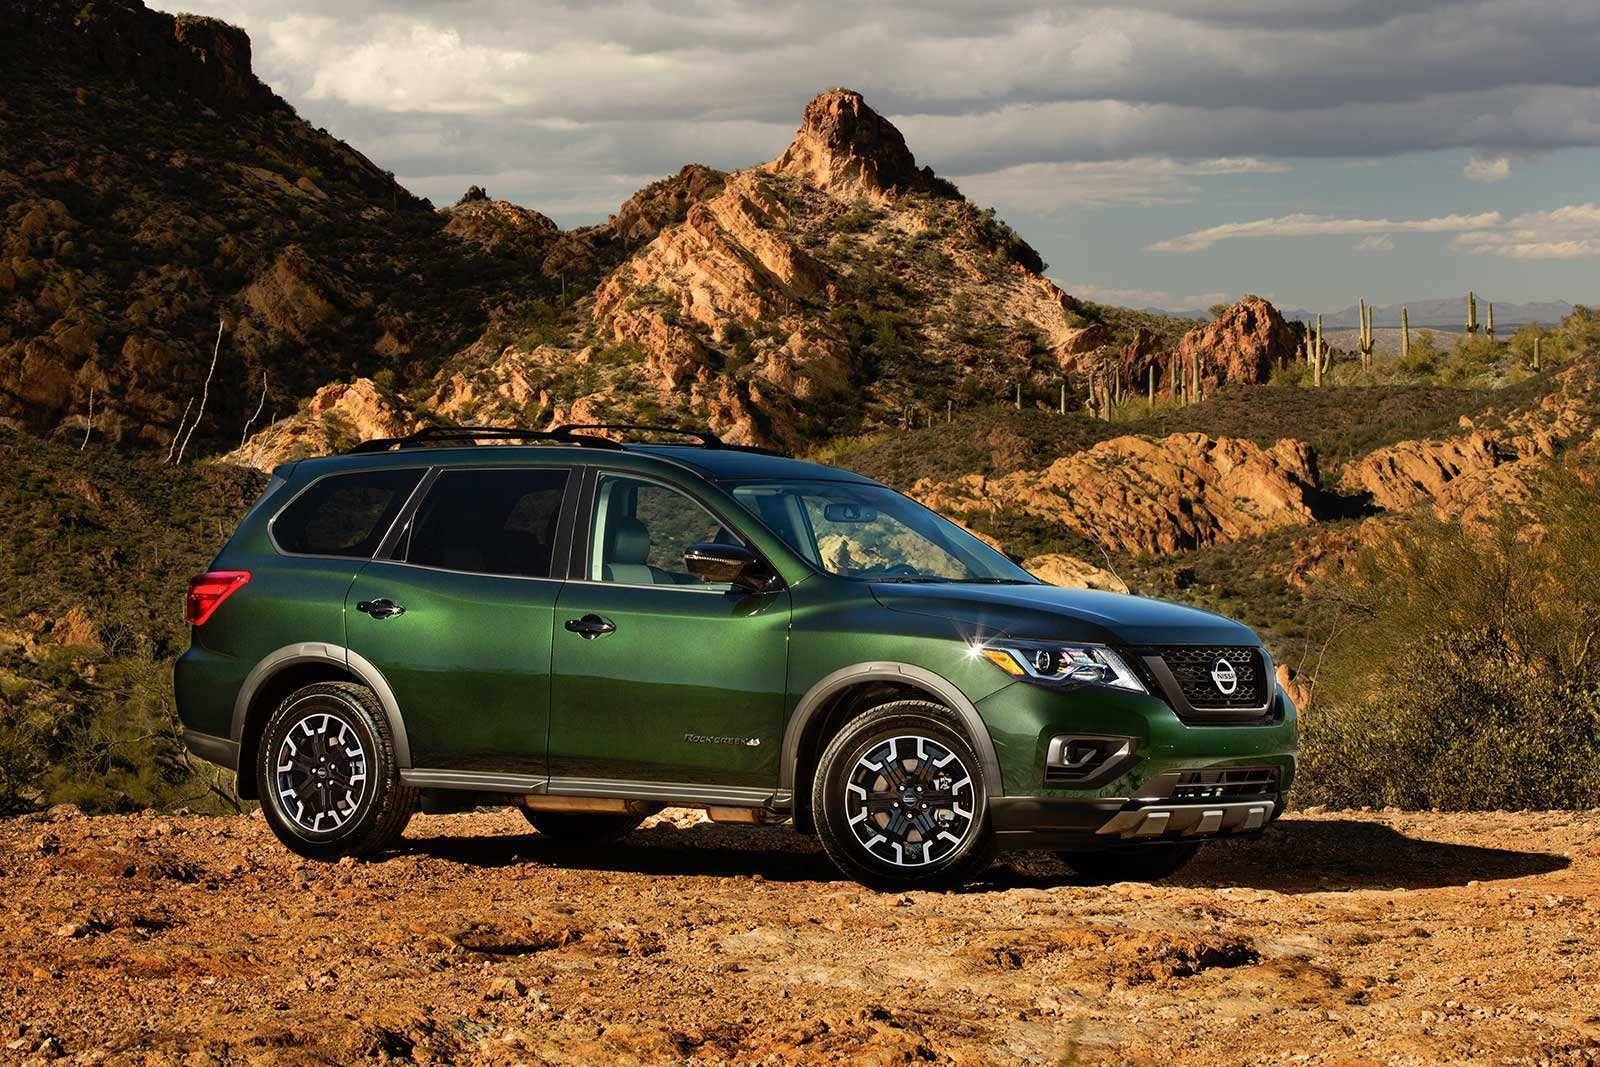 91 All New 2020 Nissan Pathfinder Model